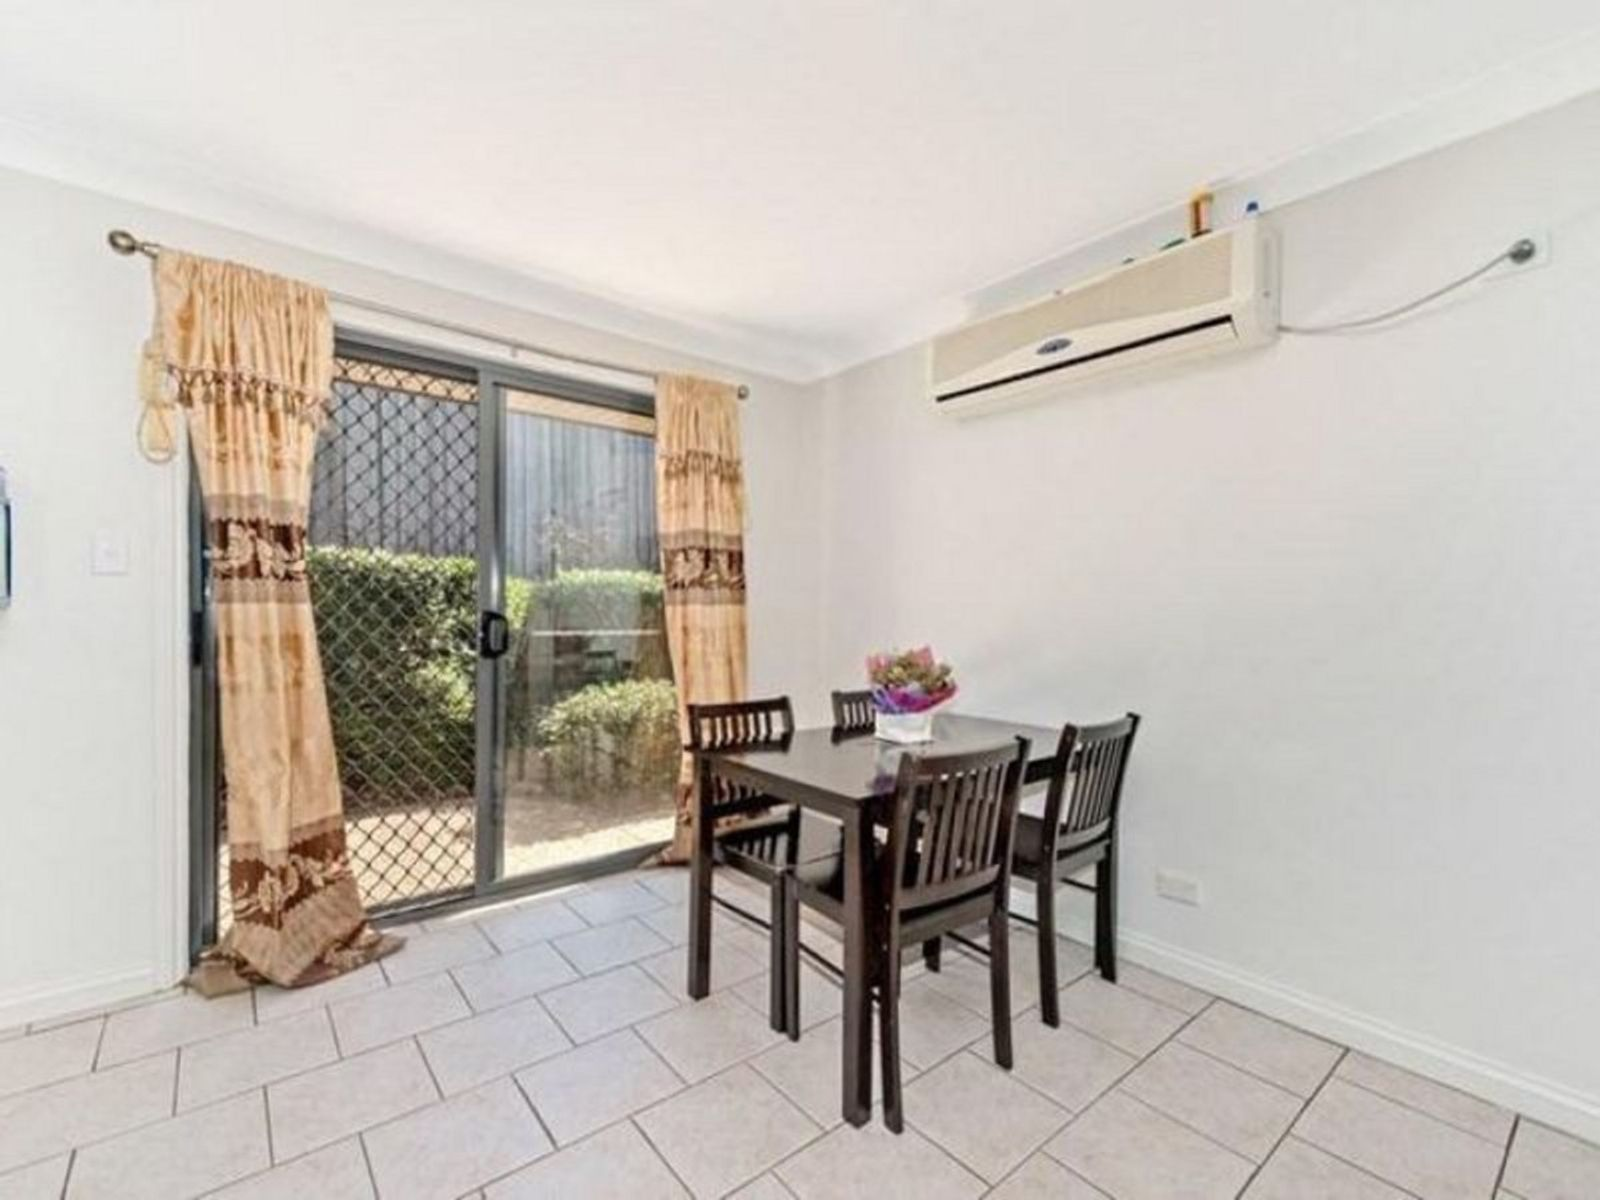 7/14 Uniplaza Court, Kearneys Spring, QLD 4350